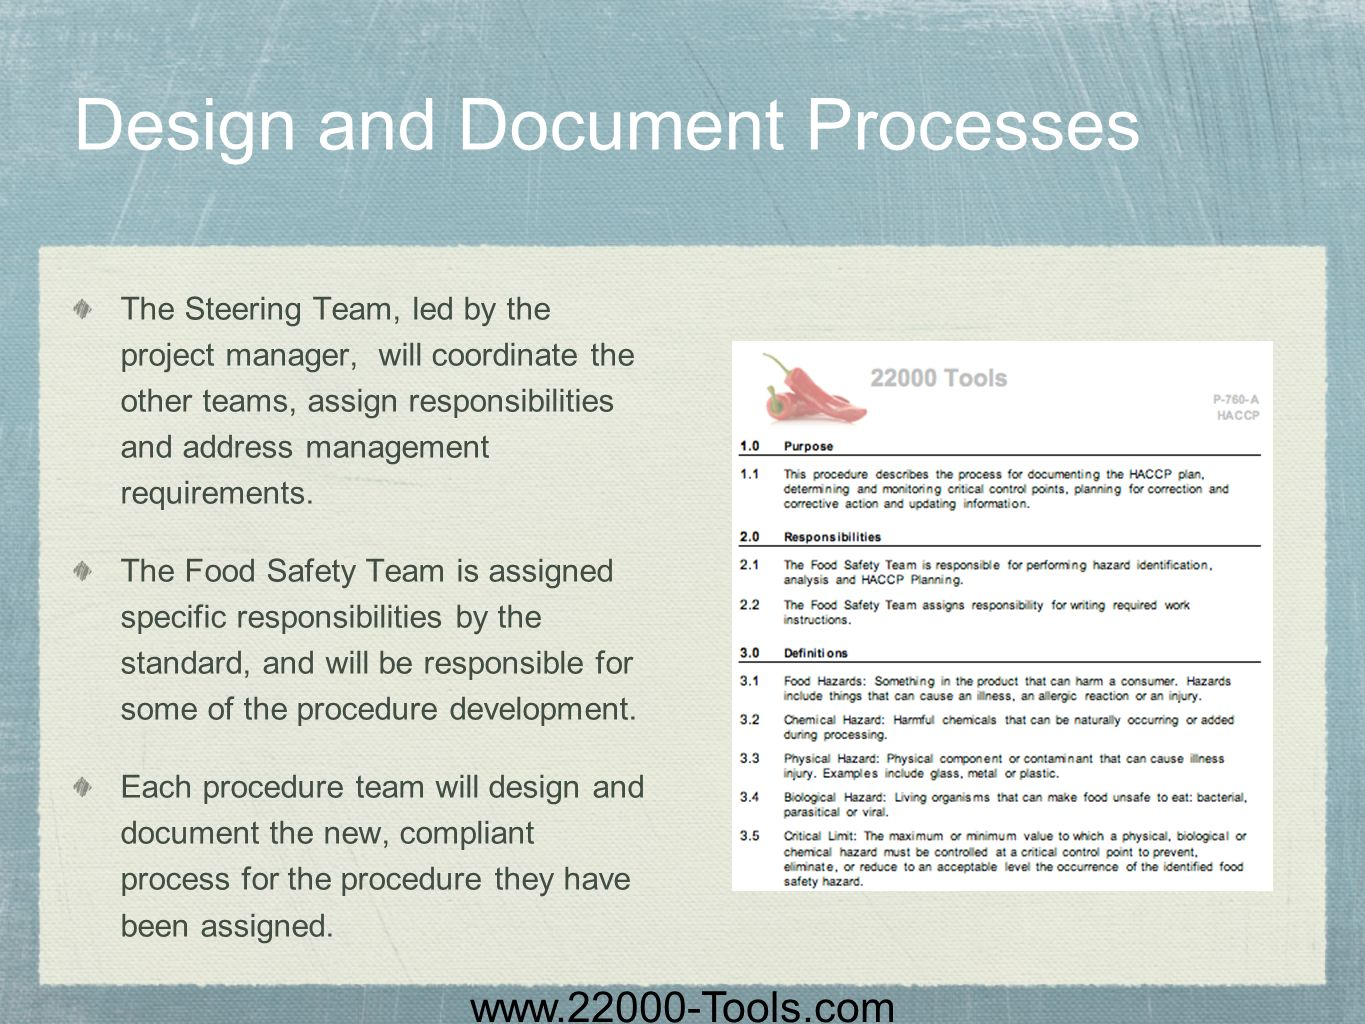 Design and Document Processes